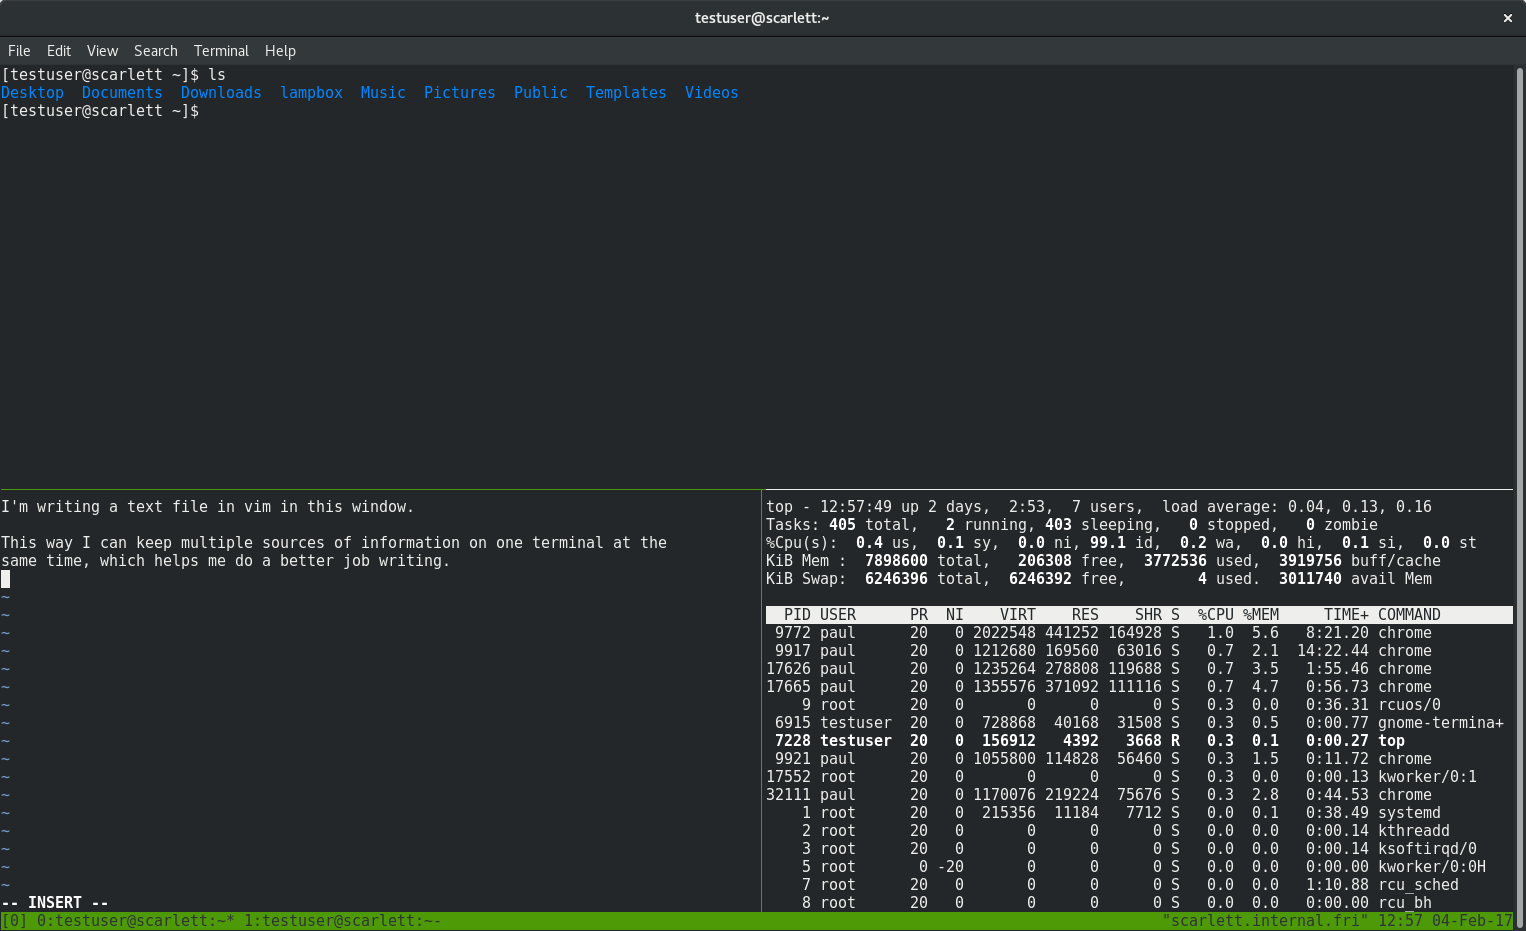 tmux session with three panes running different commands